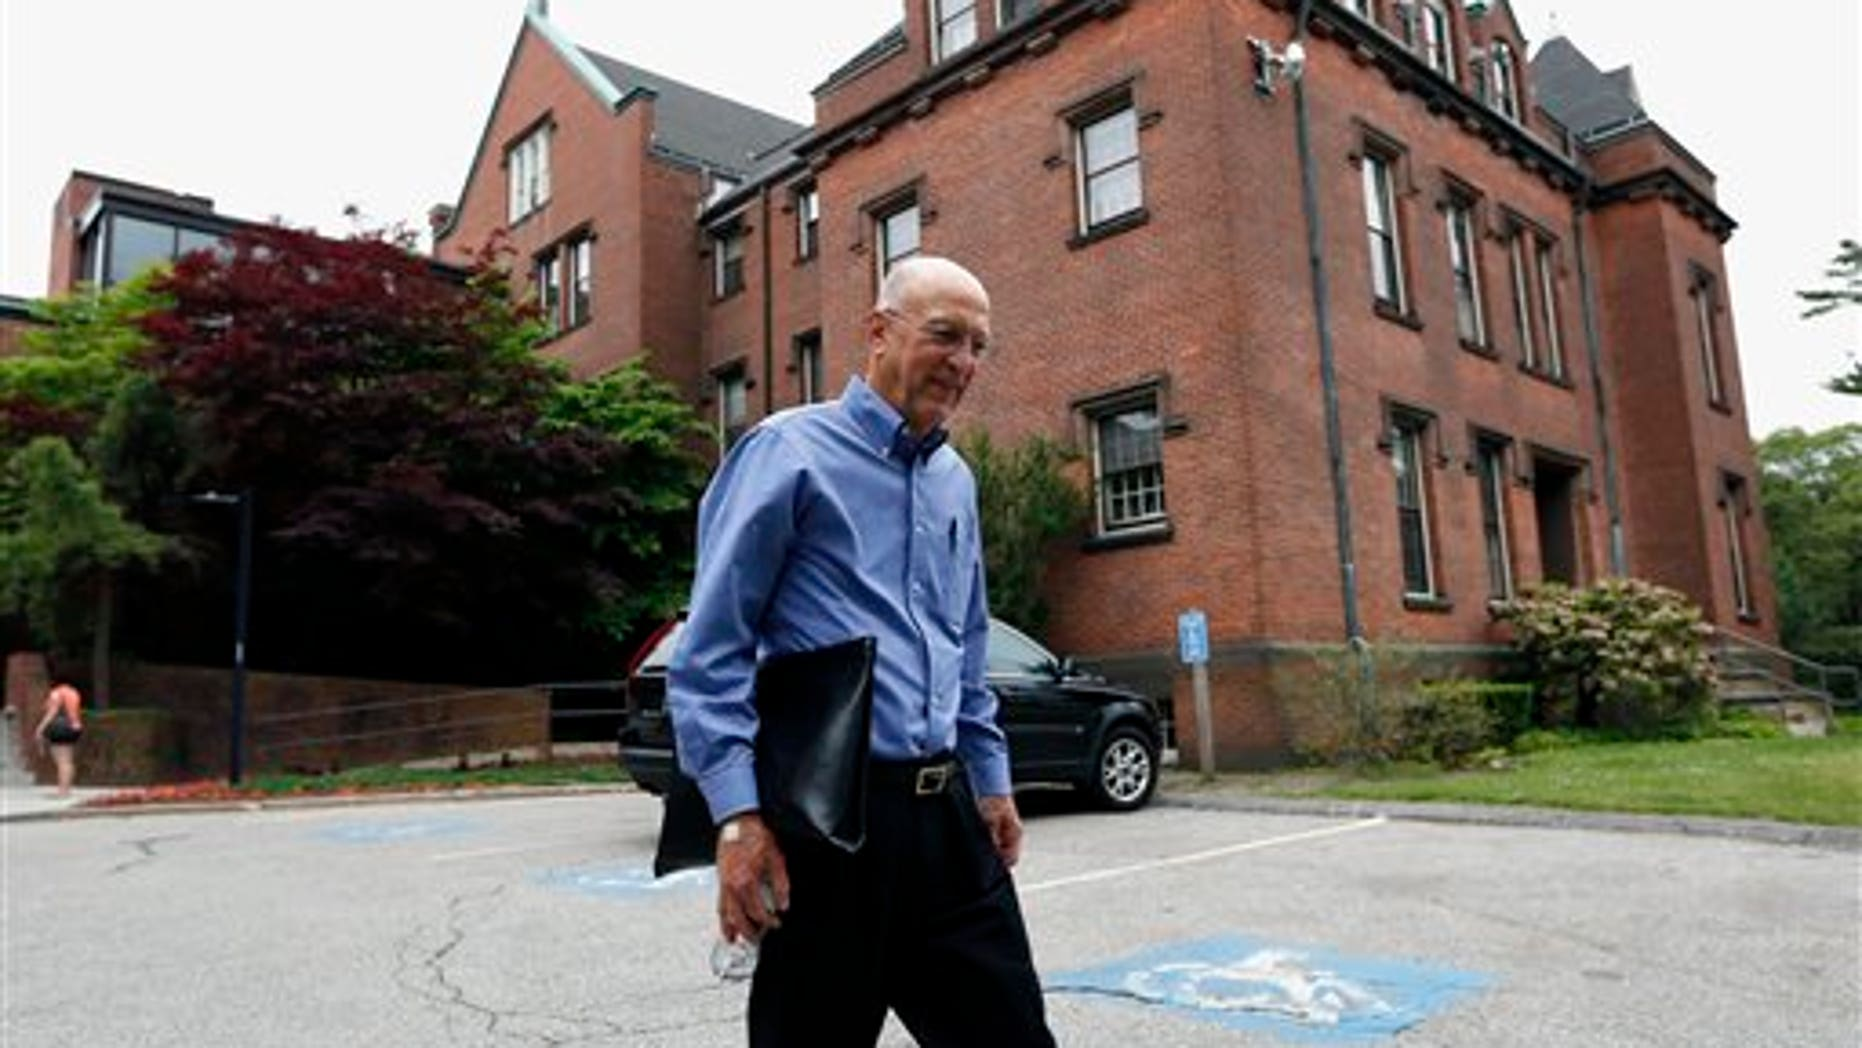 Peter Bristol of Wakefield, R.I. leaves Butler Hospital in Providence, R.I., after receiving an intravenous infusion, Monday, June 9, 2014. Bristol is part of a major study that got under way Monday to see if an experimental drug could protect outwardly healthy seniors whose brains harbor silent signs that they're at risk for Alzheimer's disease. In one of the most ambitious attempts yet to thwart Alzheimer's disease, a major study got under way Monday to see if an experimental drug can protect healthy seniors whose brains harbor silent signs that they're at risk. (AP Photo/Michael Dwyer)